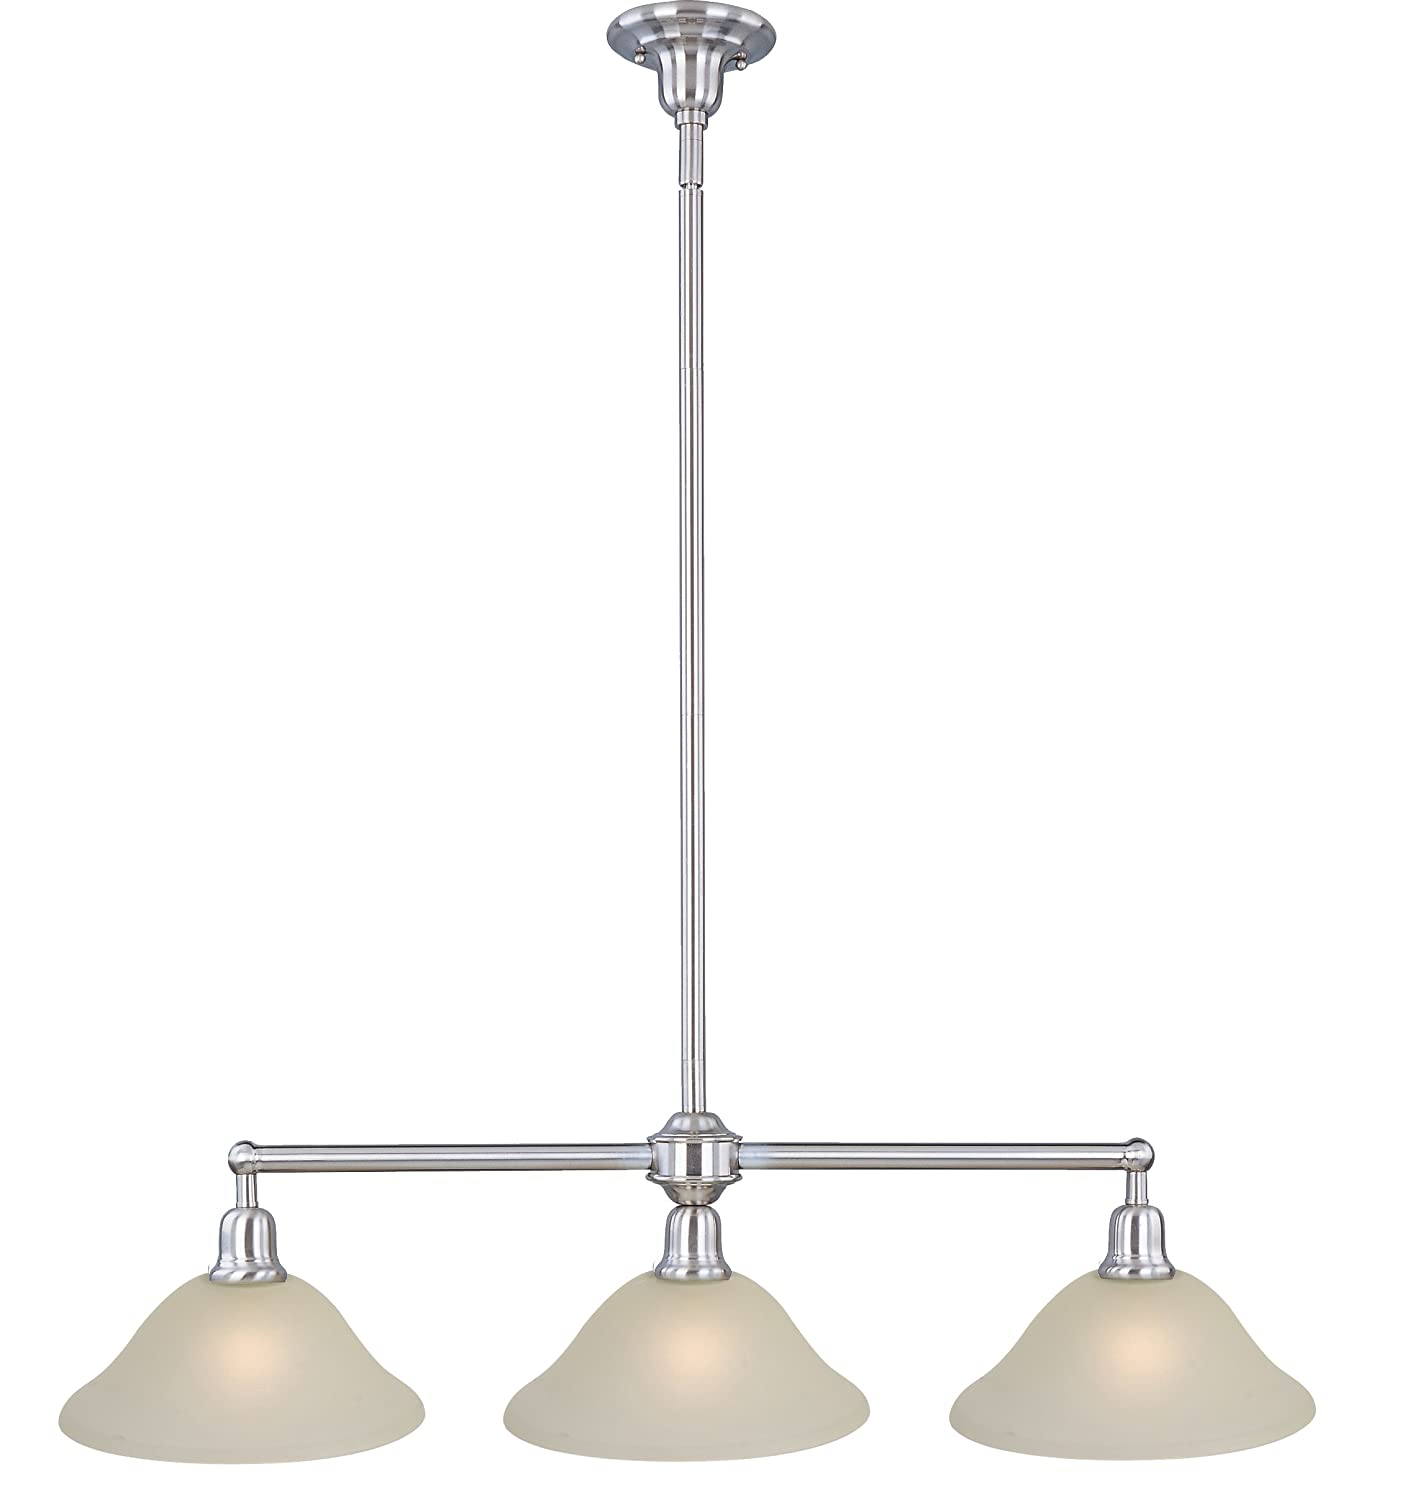 Oil Rubbed Bronze Kitchen Island Lighting Maxim 11093svoi Bel Air 3 Light Pendant Oil Rubbed Bronze